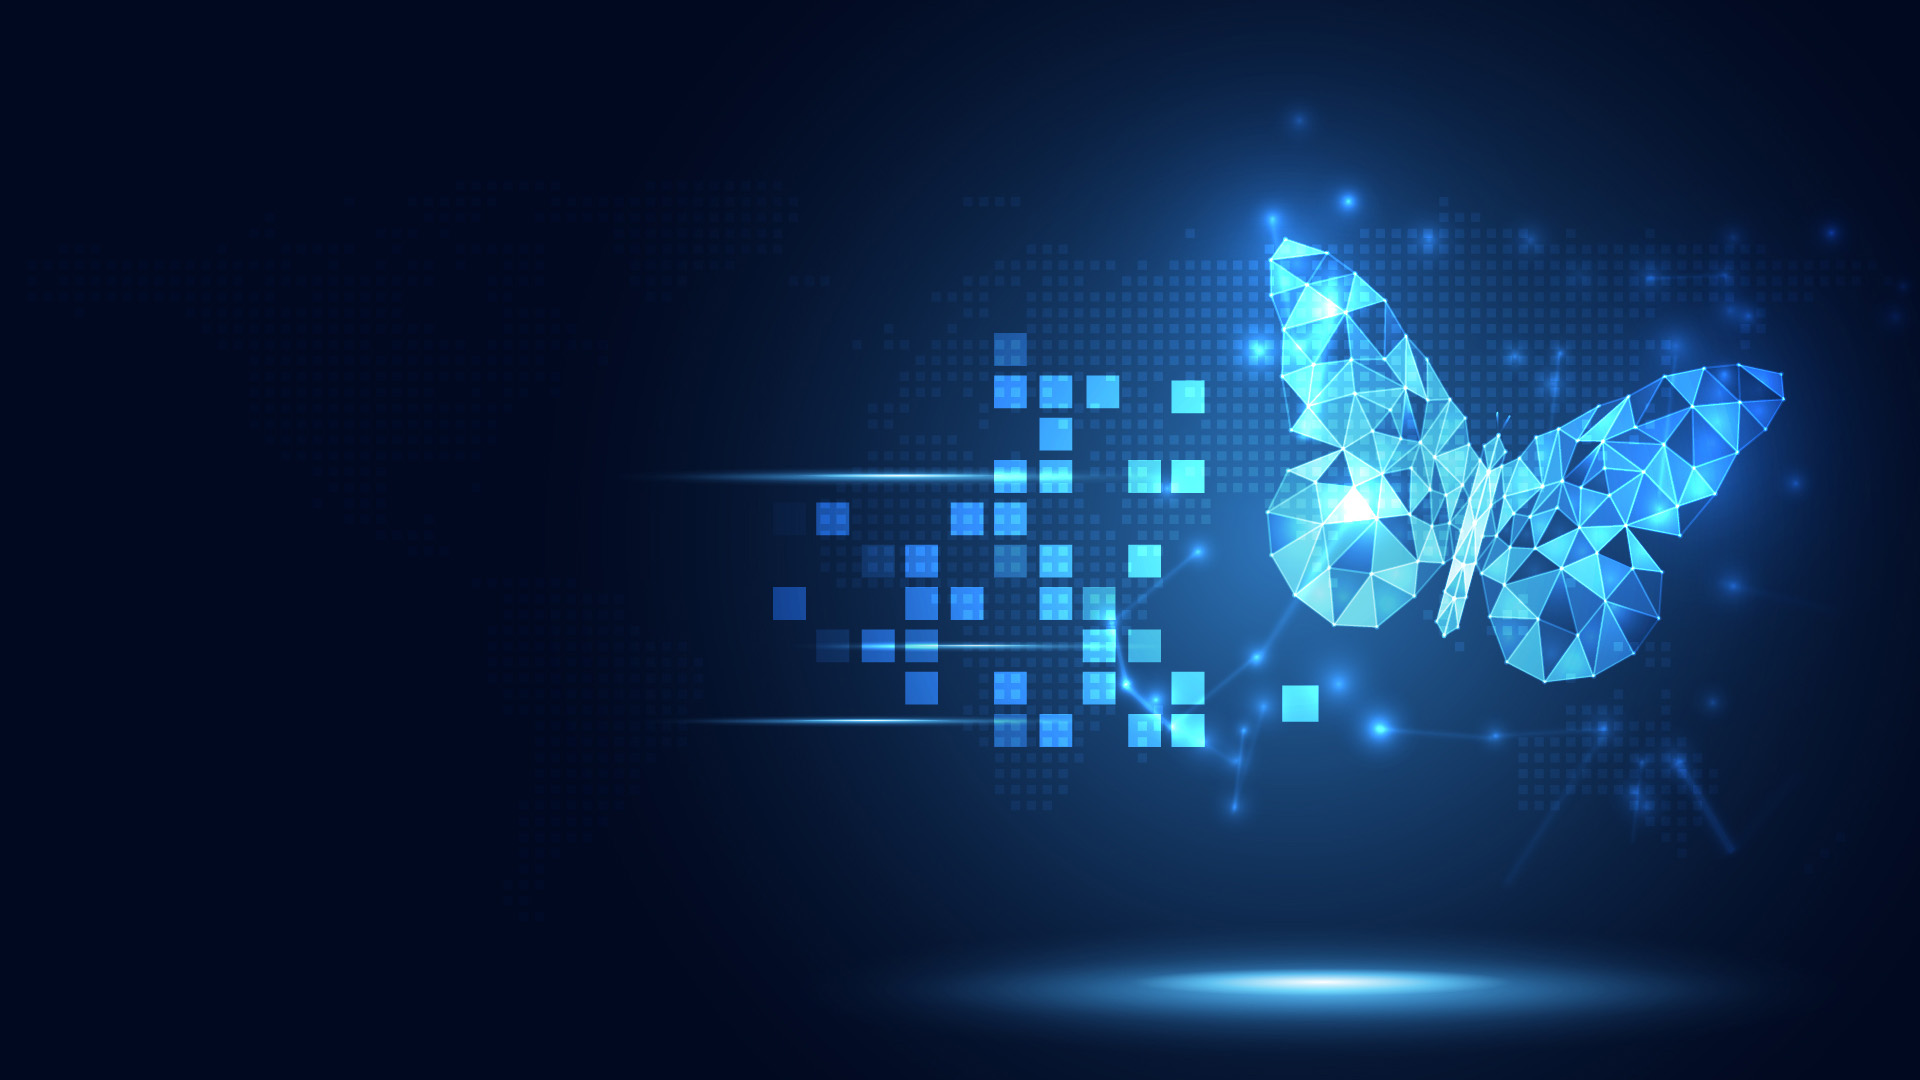 Futuristic blue gear digital transformation abstract technology background.